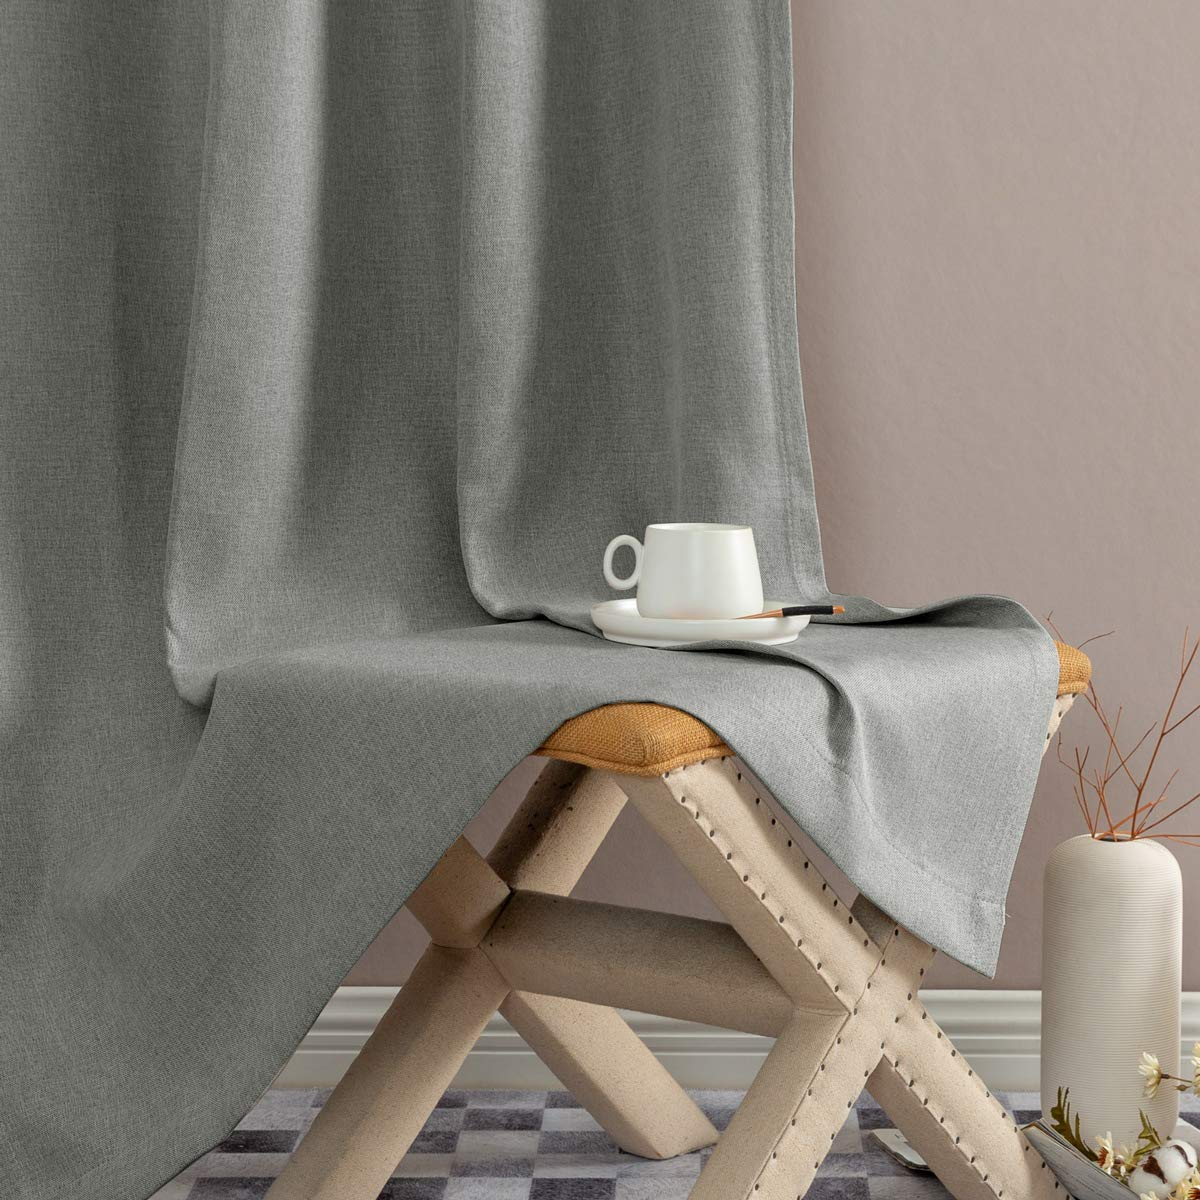 Jinchan Faux Linen Grommet Room Darkening Curtains Bedroom Linen Textured Blackout Curtains Living Room Curtain Panel Ckny Home Fashion Zbg10092 5245c07 1 Pair 45 Inch Soft Gray Window Treatment Sets